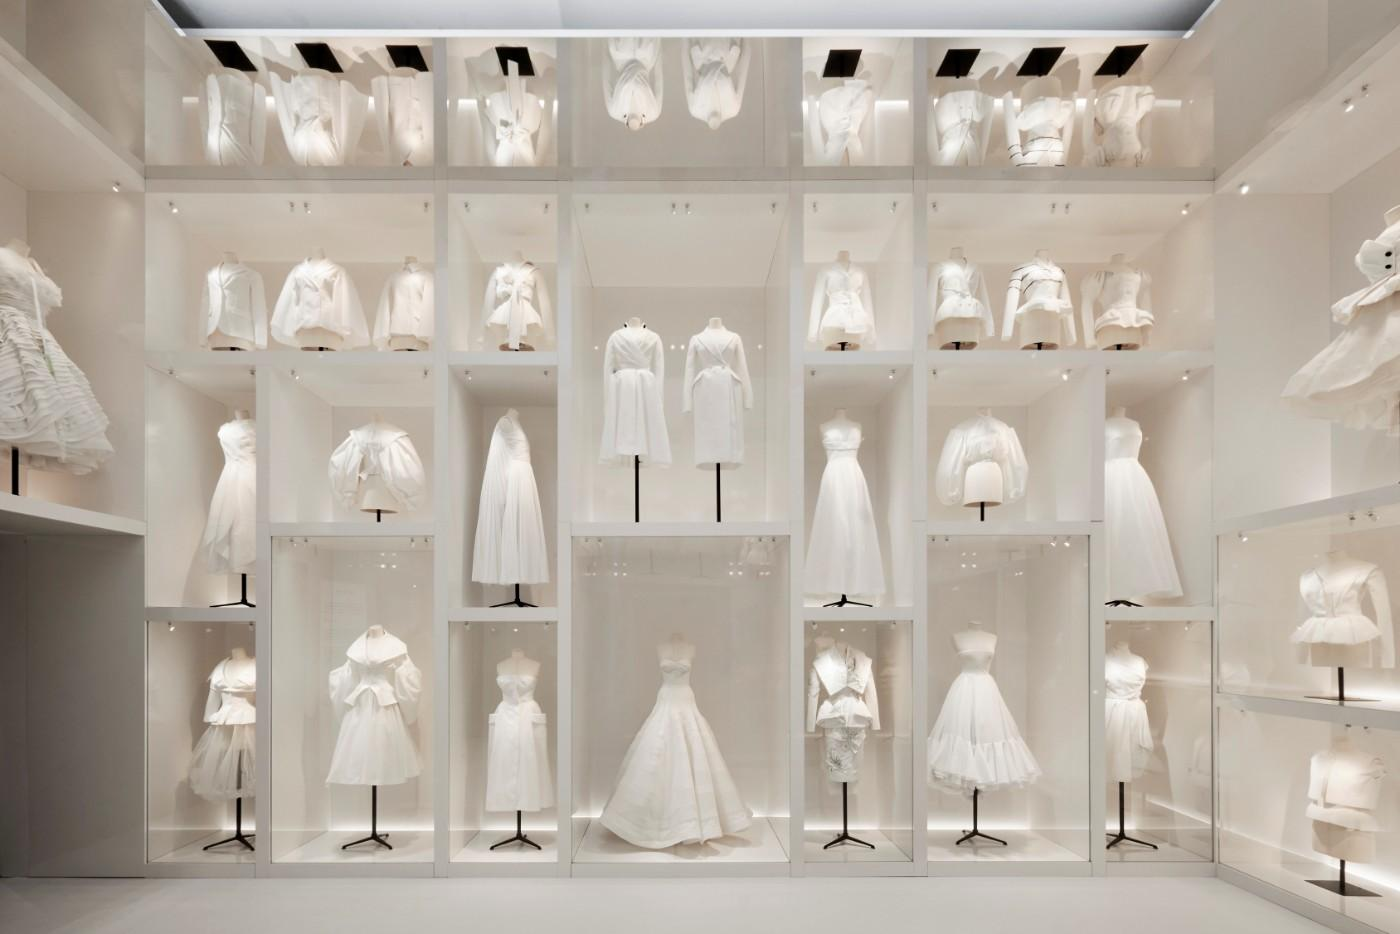 The V&A's Christian Dior Designer of Dreams exhibition, Atelier section